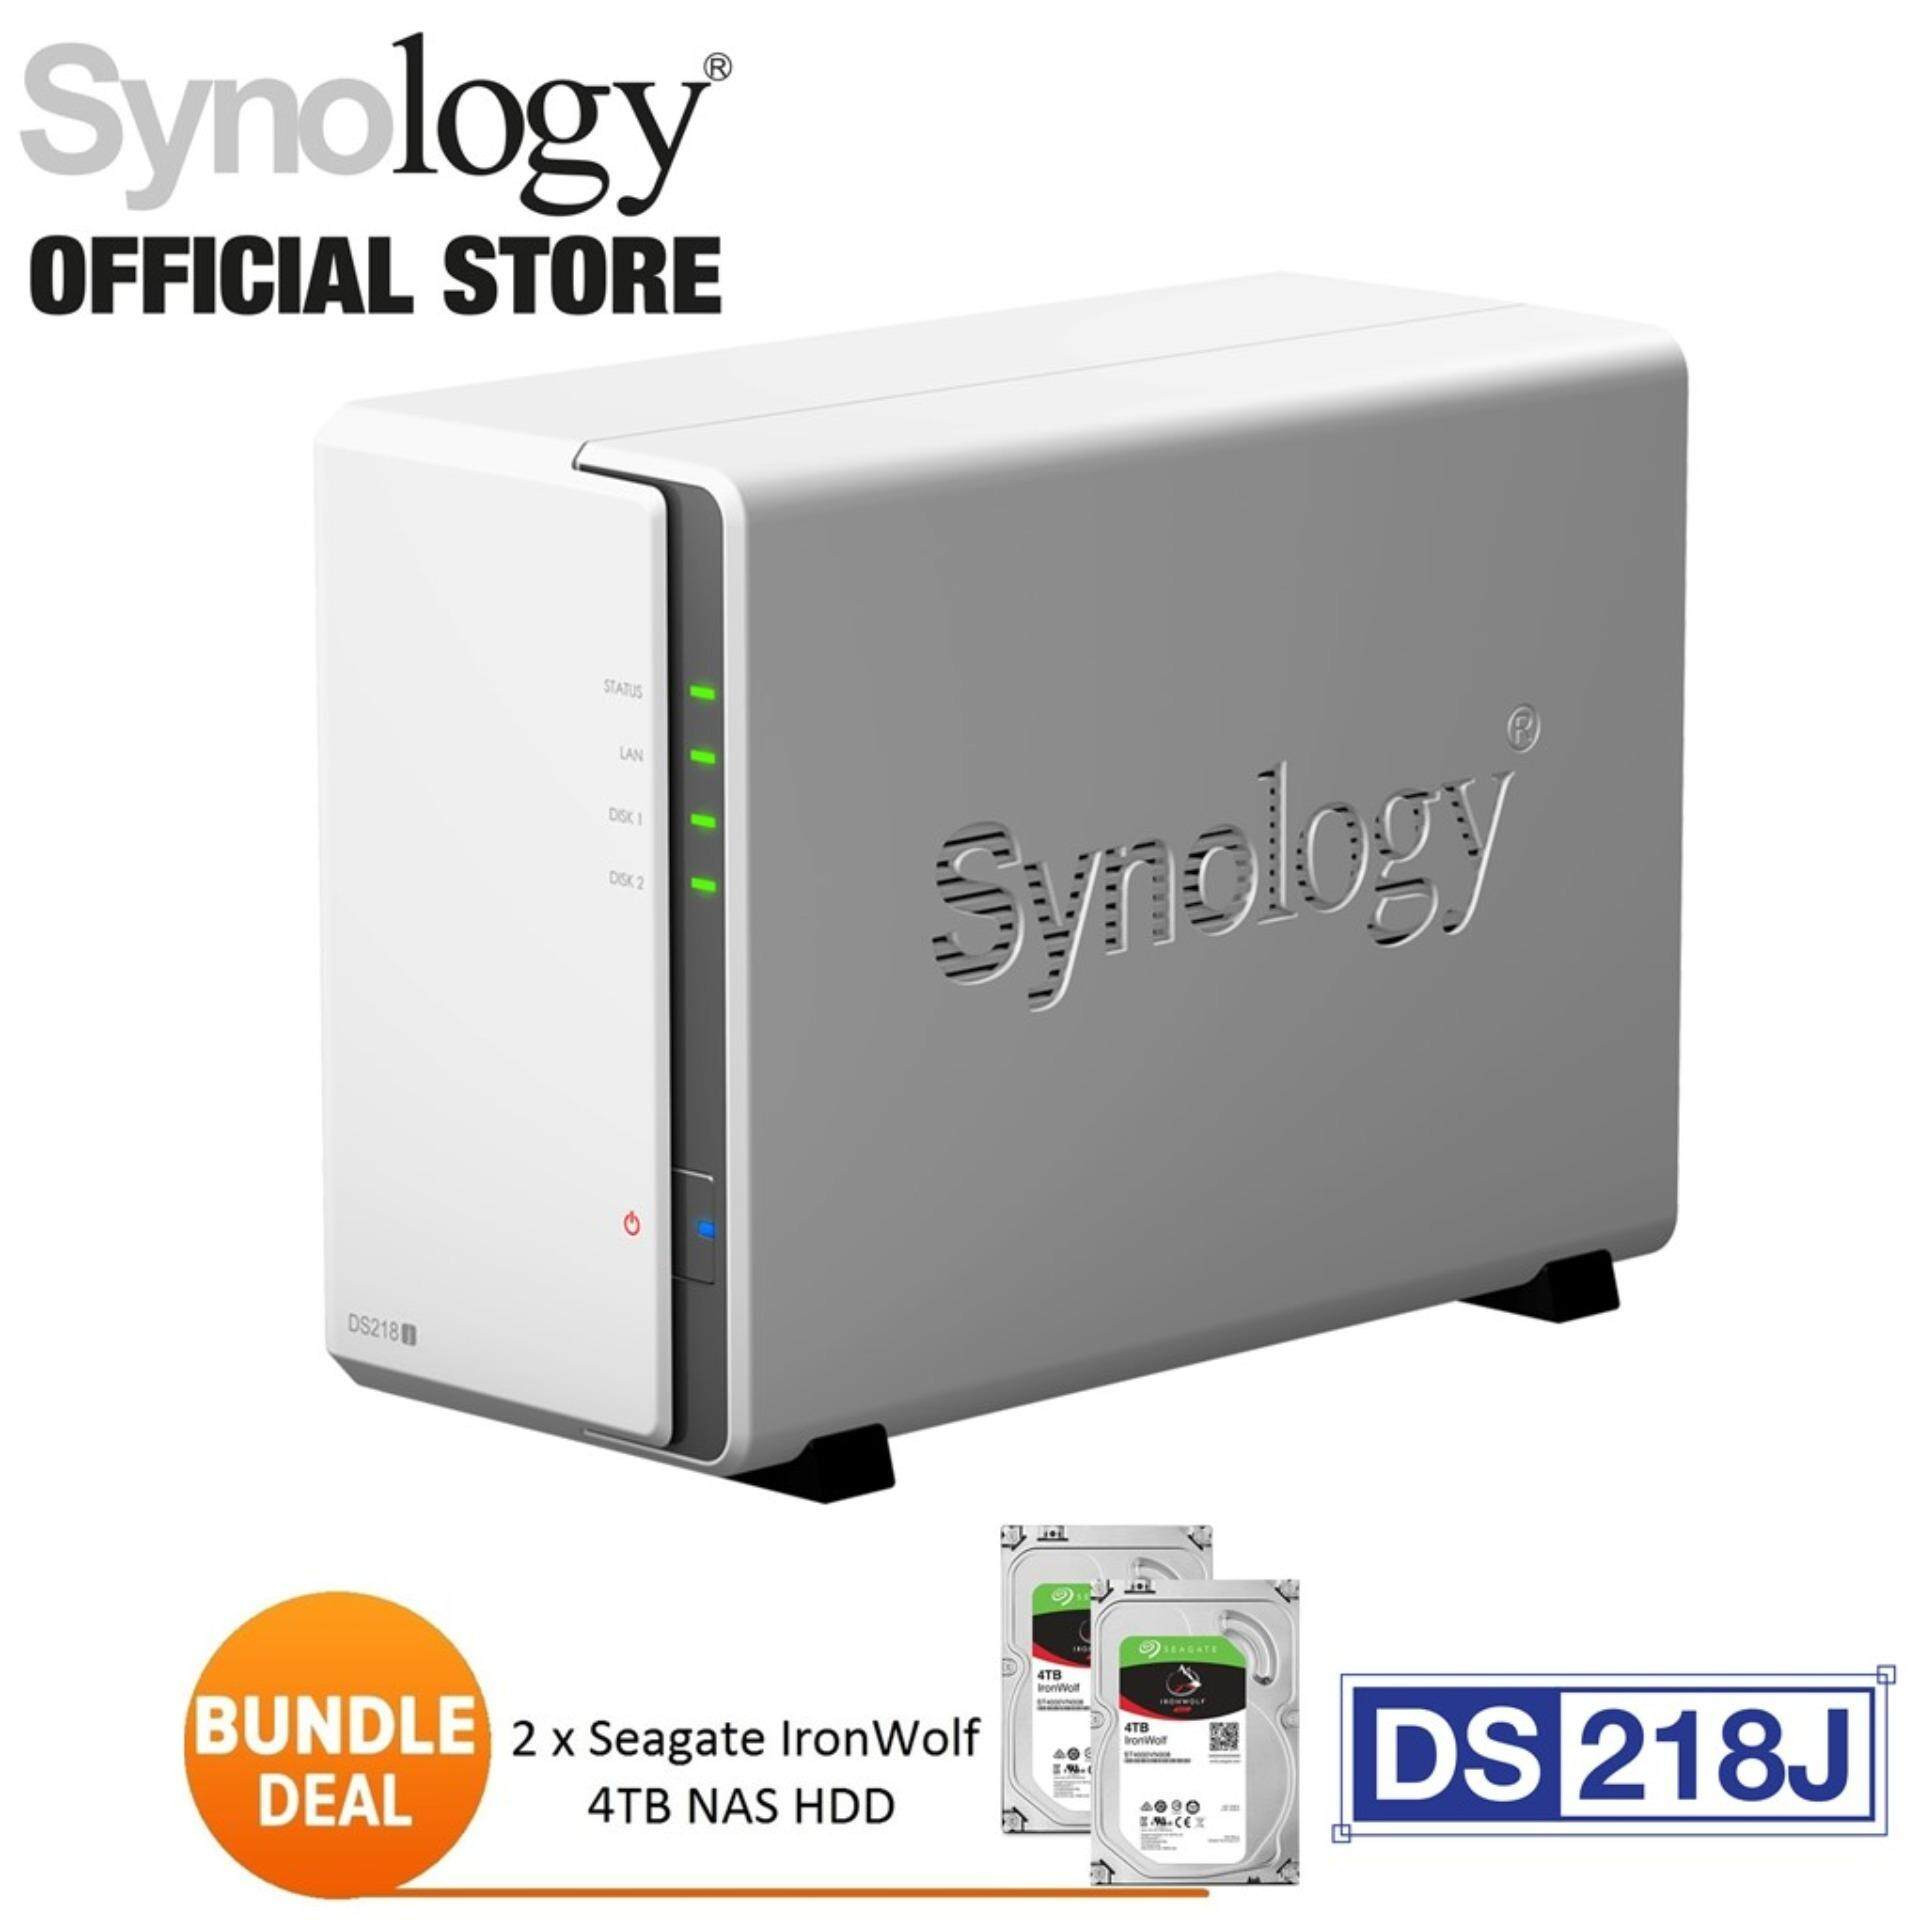 Synology DS218j NAS DiskStation 2-Bays Bundle 2unit 4TB Seagate Ironwolf  NAS Hard Drive